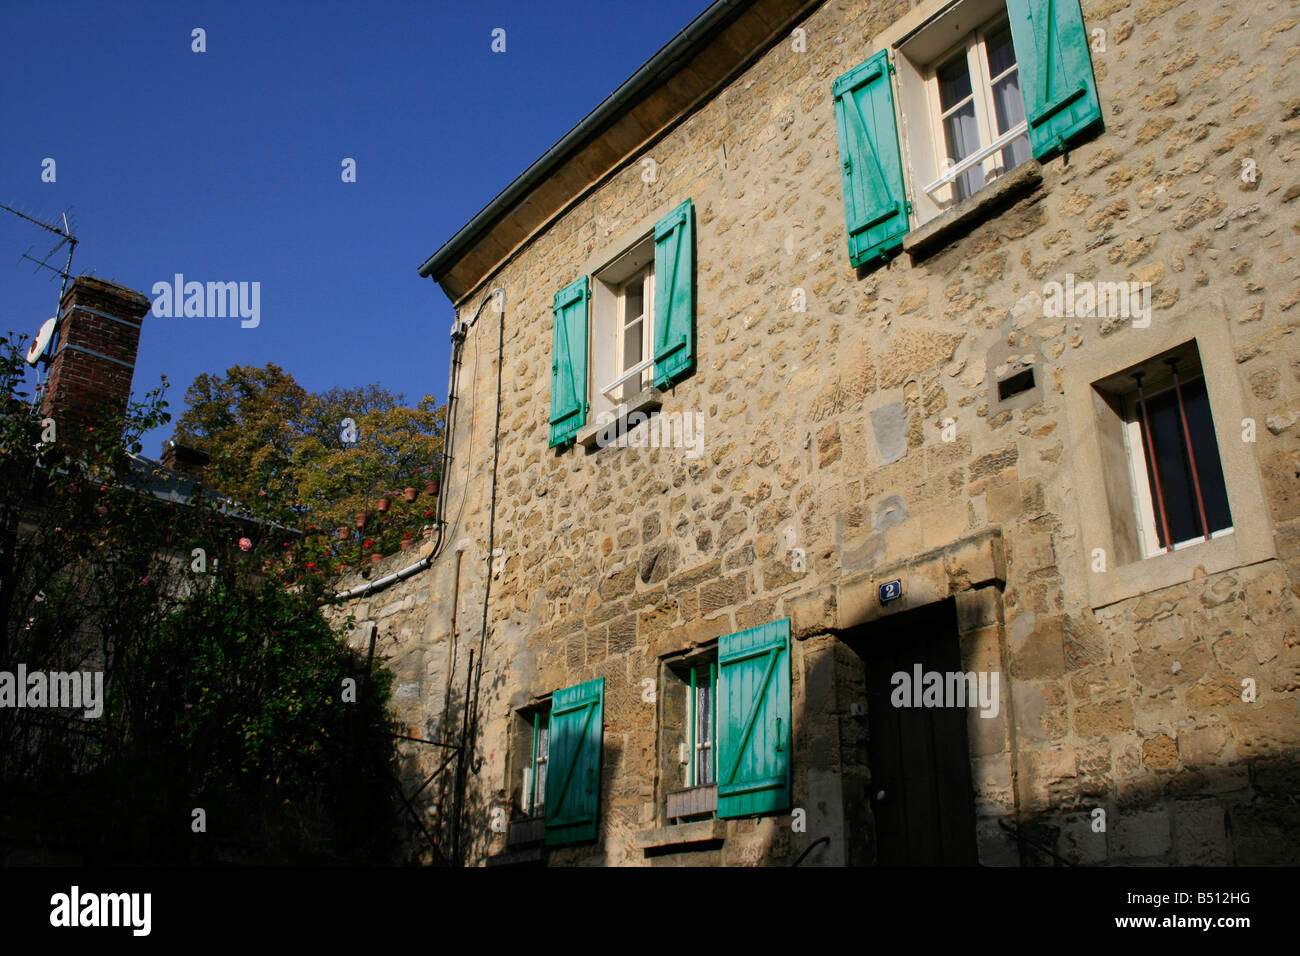 Town Auvers Stock Photos & Town Auvers Stock Images - Alamy